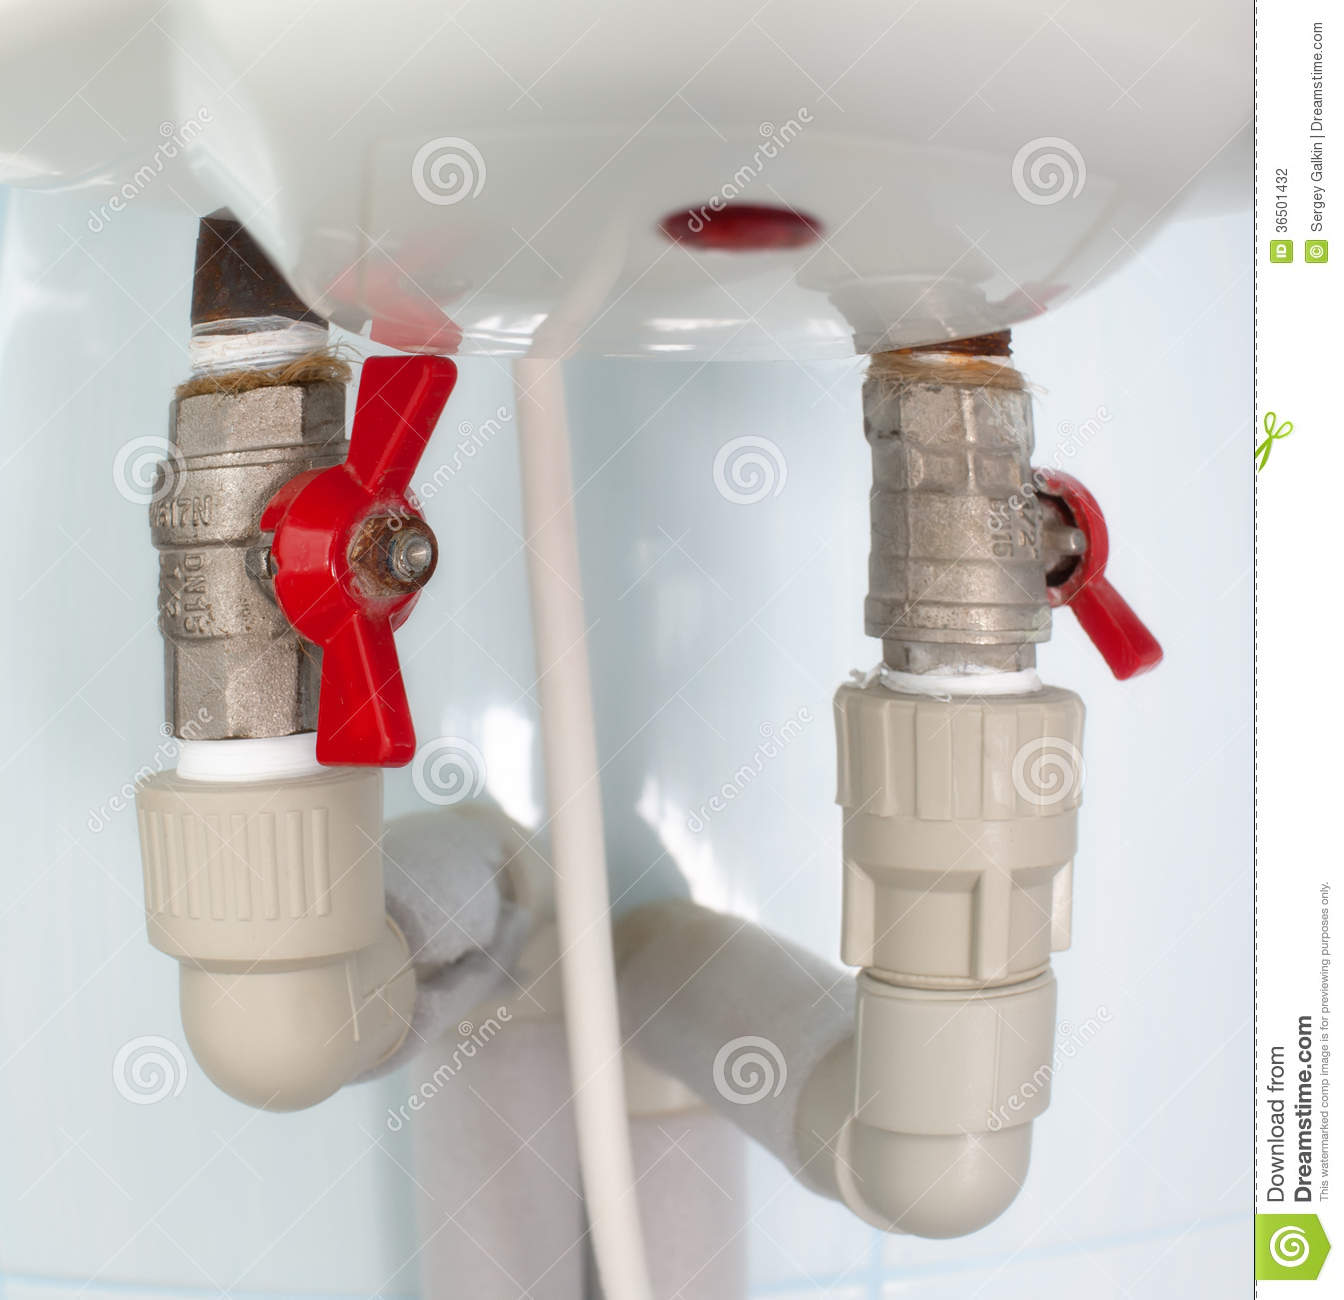 valve stock photo  image of cold  water  tank  bathroom